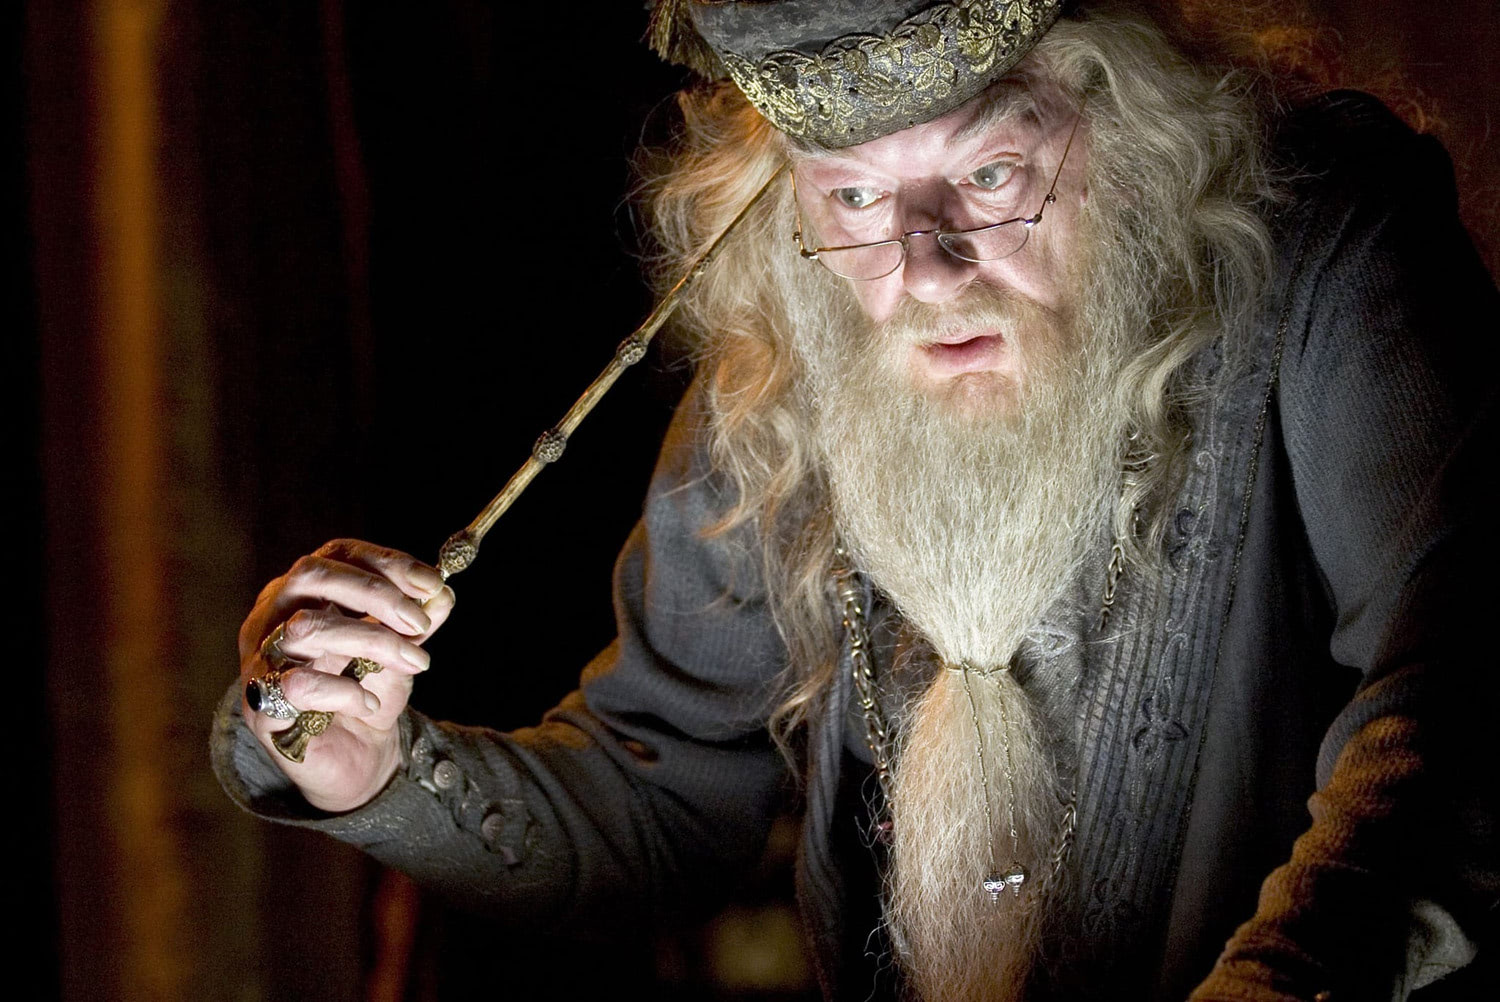 Dumbledore prepares to extract a memory